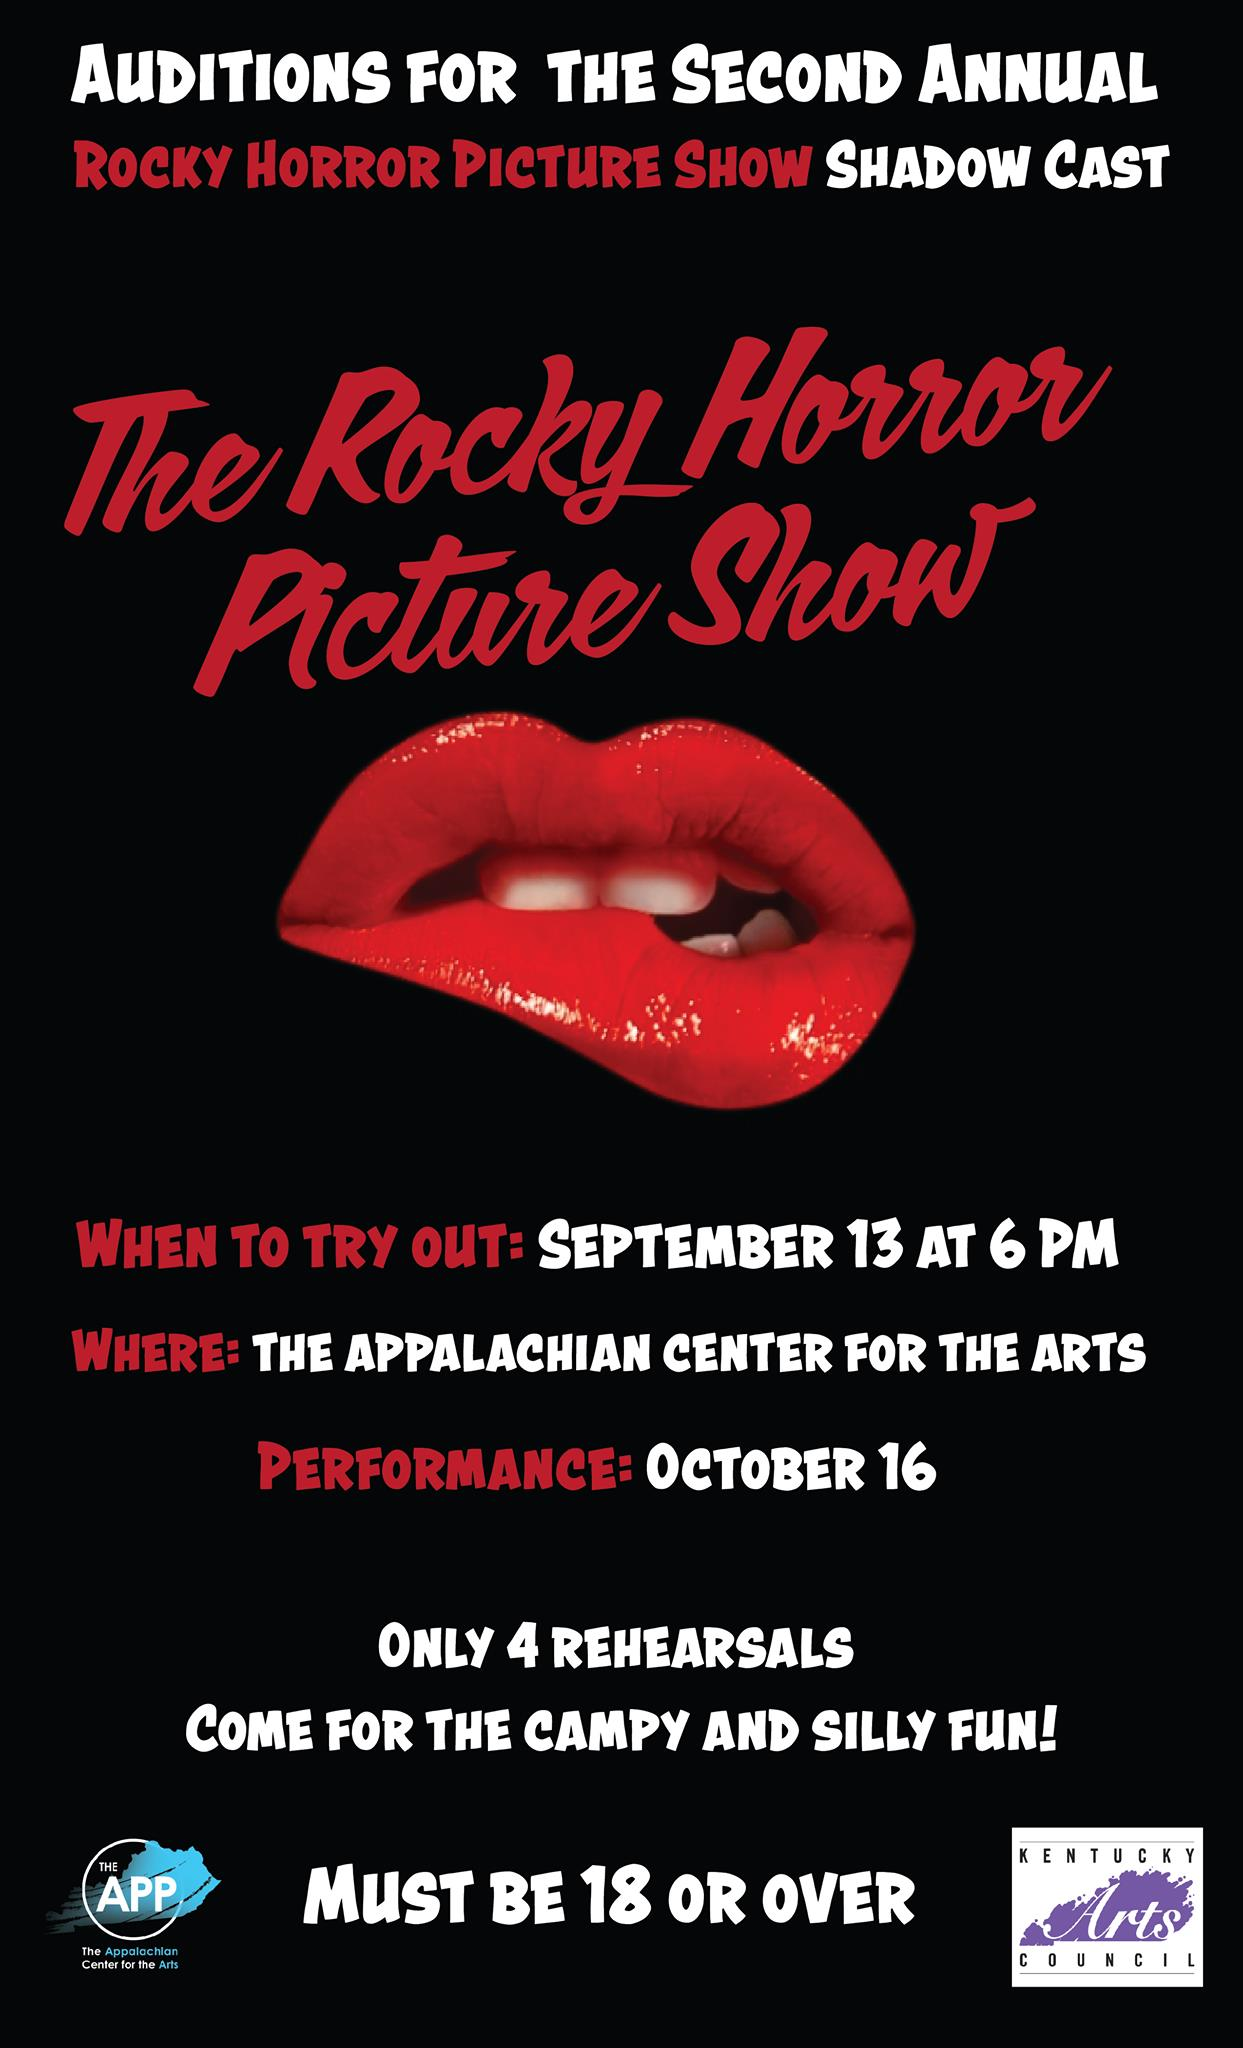 Auditions for the second annual Rocky Horror Picture Show